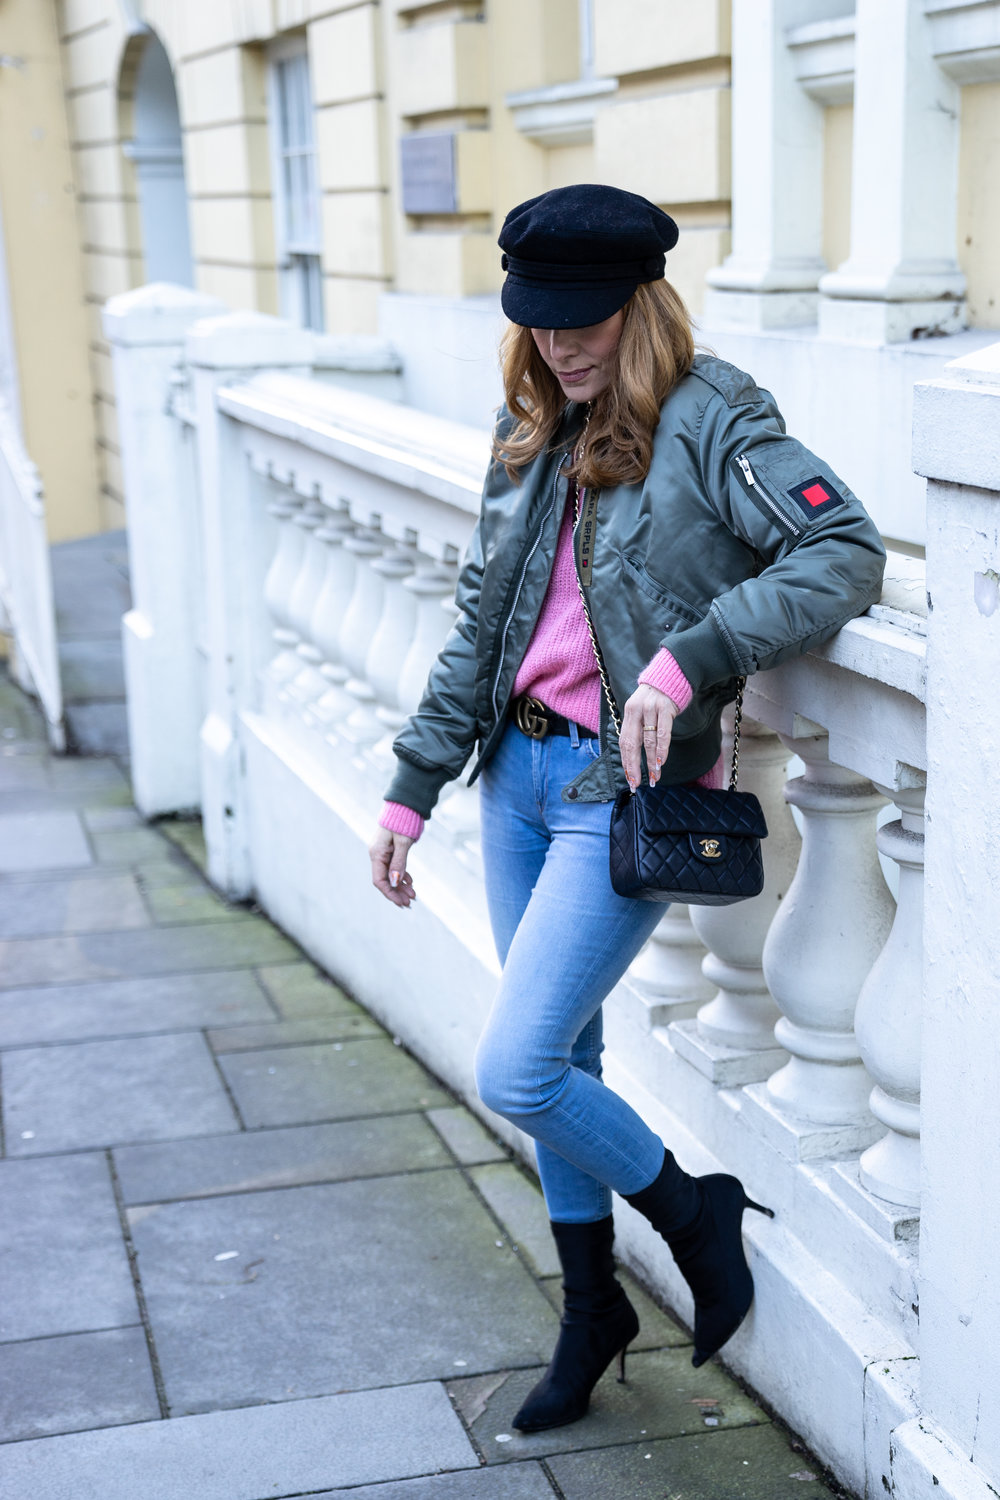 The Style Bible - Grey Days and pink jumpers